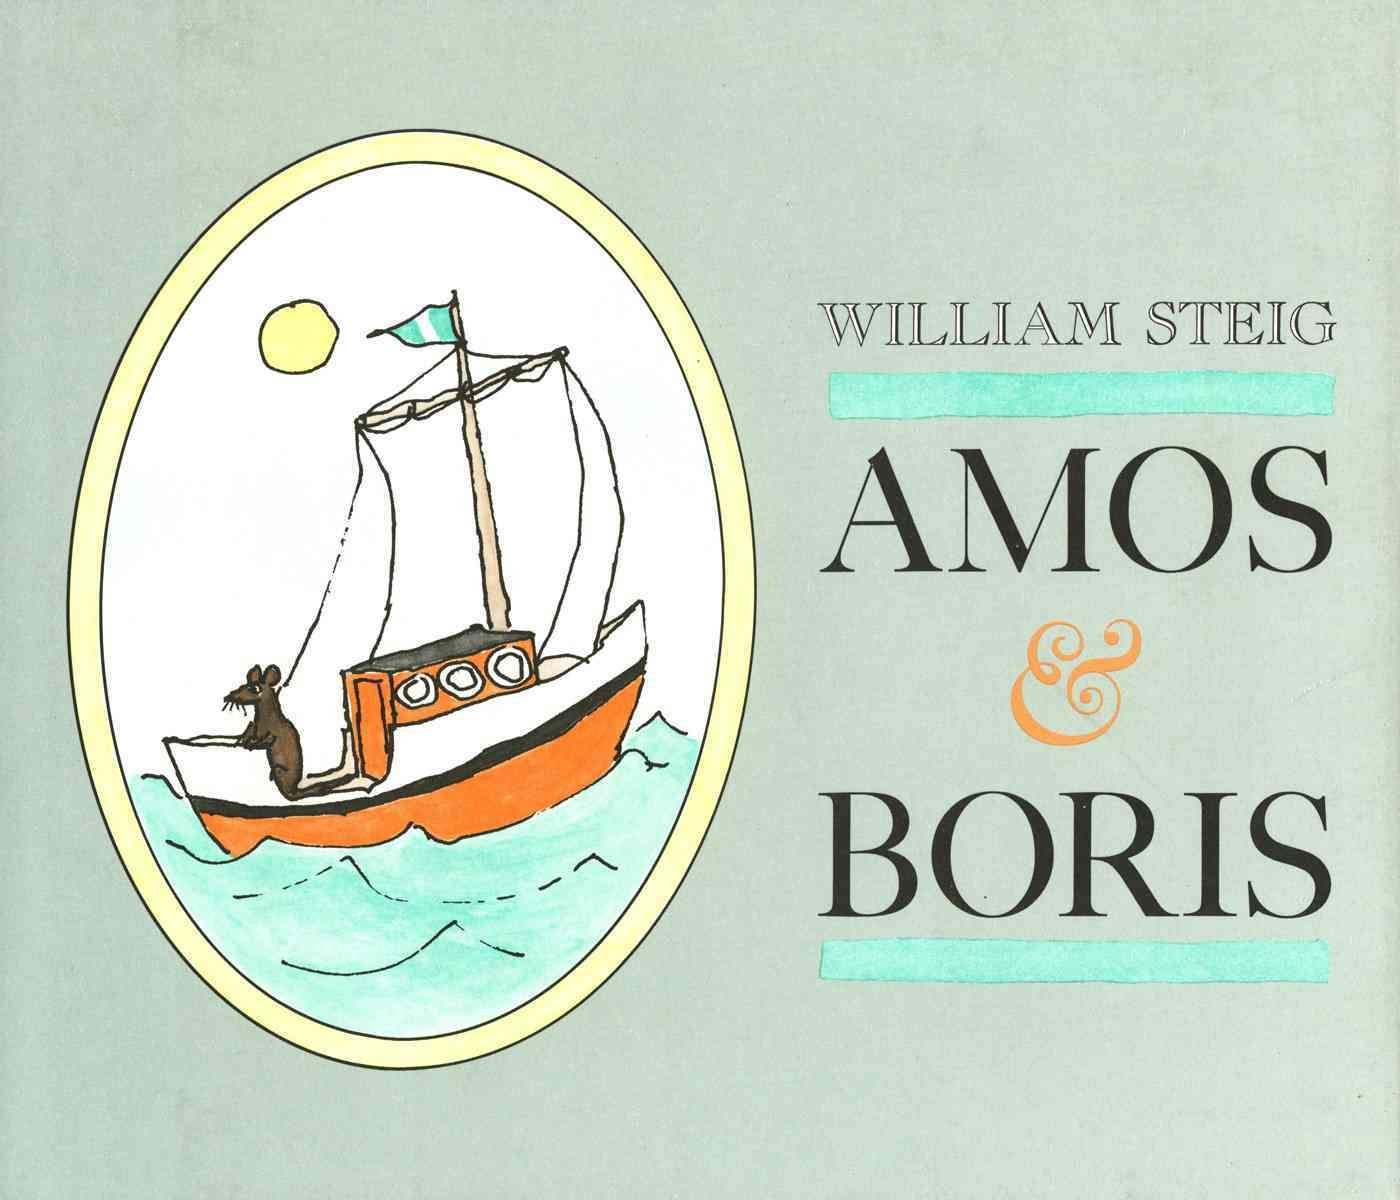 Amos & Boris - William Steig